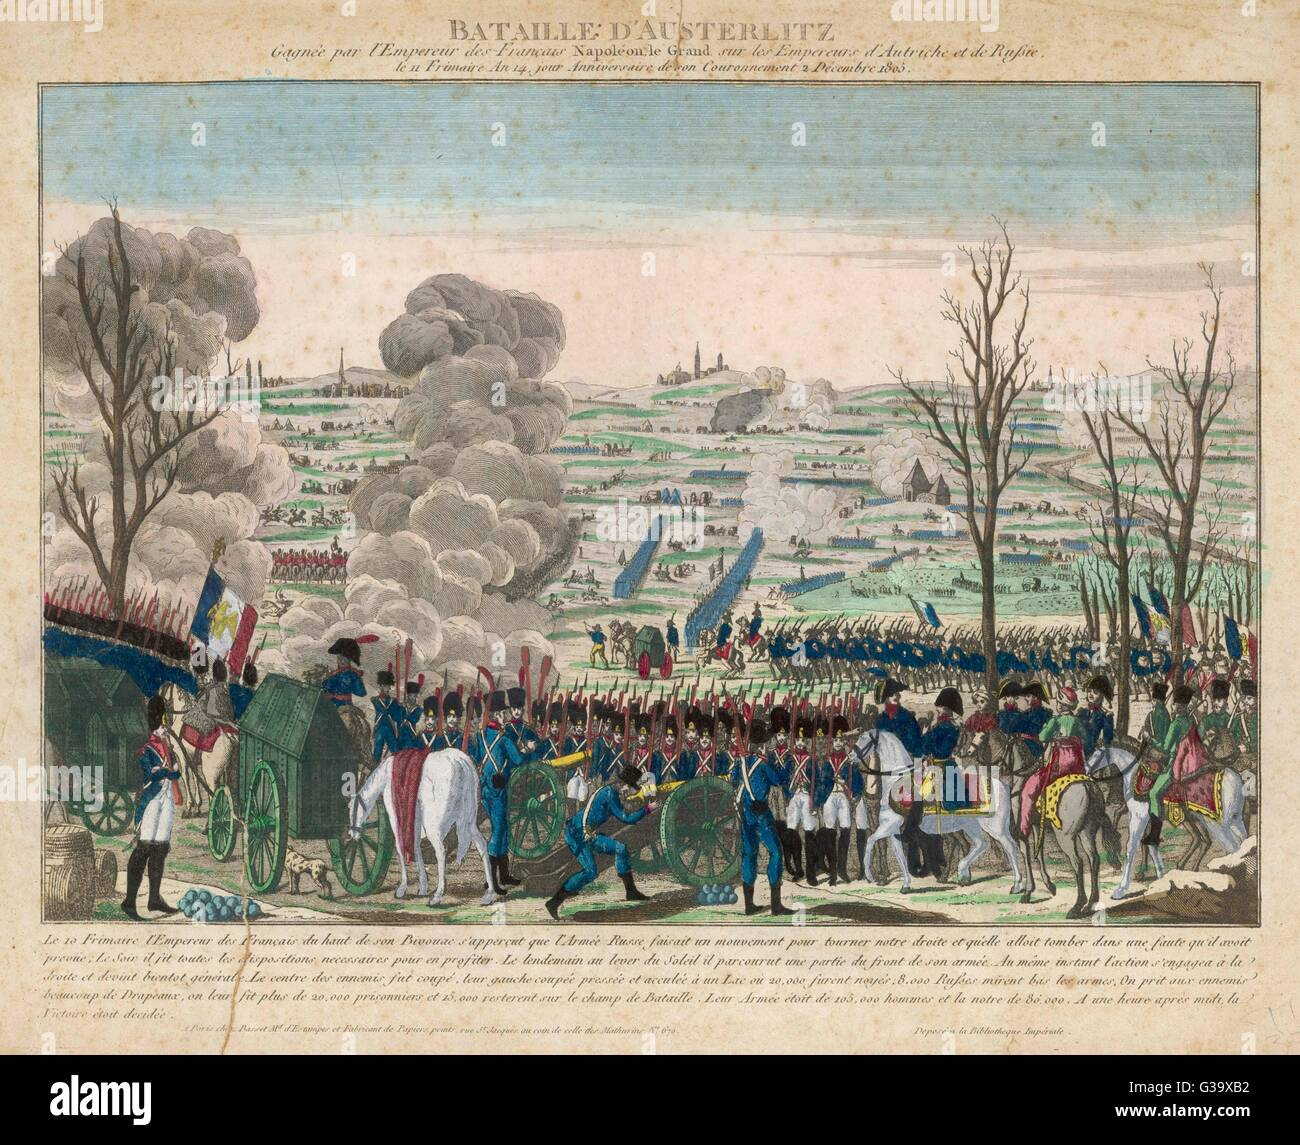 BATTLE OF AUSTERLITZ The emperors of Russia,  Austria and France are all  present at this massive  battle in which - Stock Image